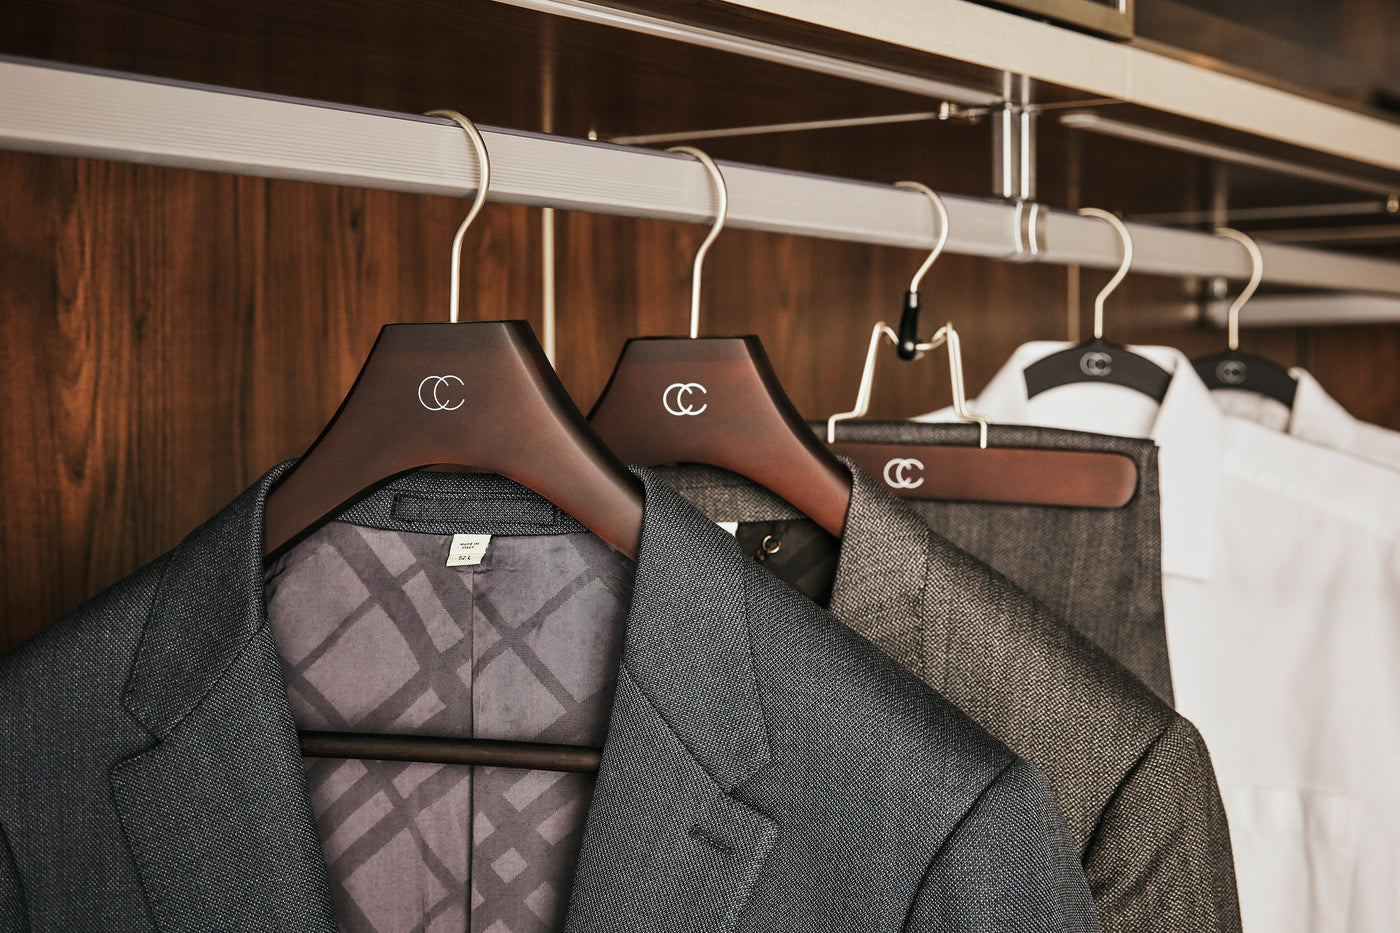 Suit Hangers Collection by California Closets Essentials